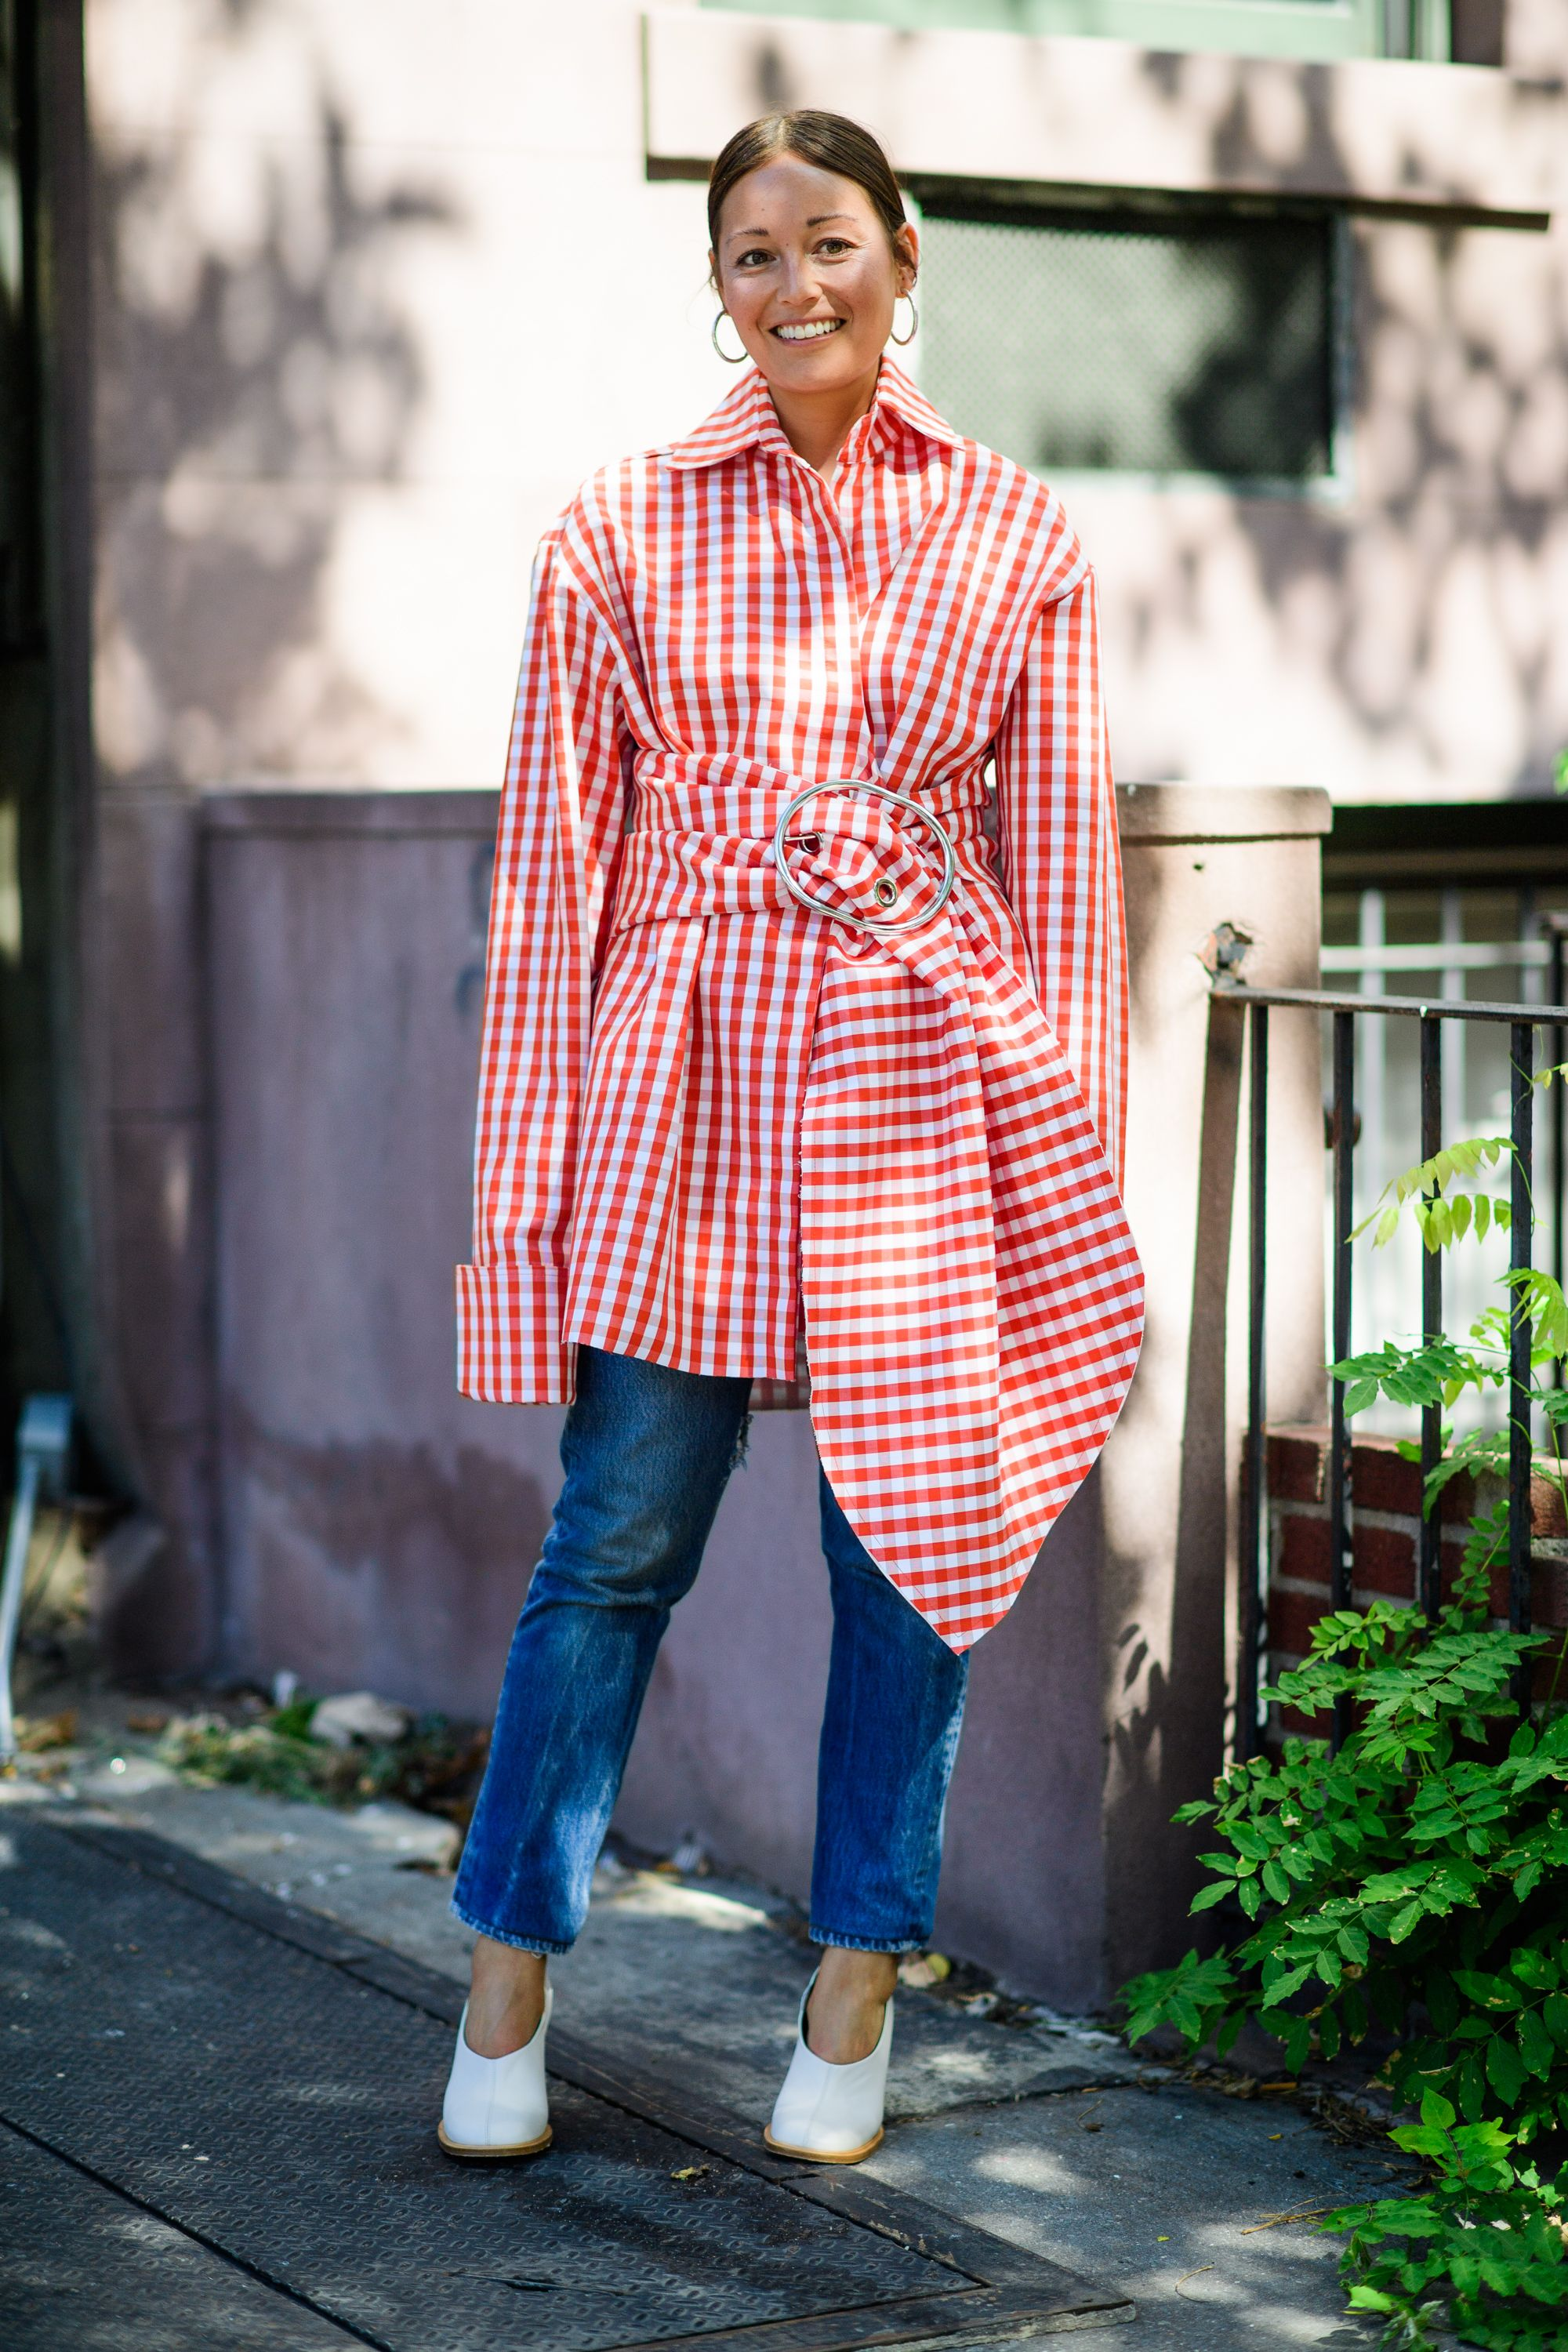 """<p>""""Gingham was once associated with a certain preppy style but has now become much more fashionable thanks to J.W.Anderson, Rosie Assoulin, and Altuzarra,"""" says Aiken. """"It's our alternative and welcomed second option to stripes, a perennial summer print."""" &nbsp&#x3B;Elyse Walker, fashion director of <a href=""""http://www.fwrd.com/"""" data-tracking-id=""""recirc-text-link"""">Forward</a>, agrees. """"<strong data-redactor-tag=""""strong"""" data-verified=""""redactor"""">I am loving anything with gingham or ruffles,</strong>"""" she says. """"<a href=""""http://www.fwrd.com/brand-caroline-constas/1c2dec/"""" data-tracking-id=""""recirc-text-link"""">Caroline Constas</a> and <a href=""""http://www.fwrd.com/brand-johanna-ortiz/d65bda/"""" data-tracking-id=""""recirc-text-link"""">Johanna Ortiz</a> do these so well.<span class=""""redactor-invisible-space"""" data-verified=""""redactor"""" data-redactor-tag=""""span"""" data-redactor-class=""""redactor-invisible-space"""">""""</span></p>"""